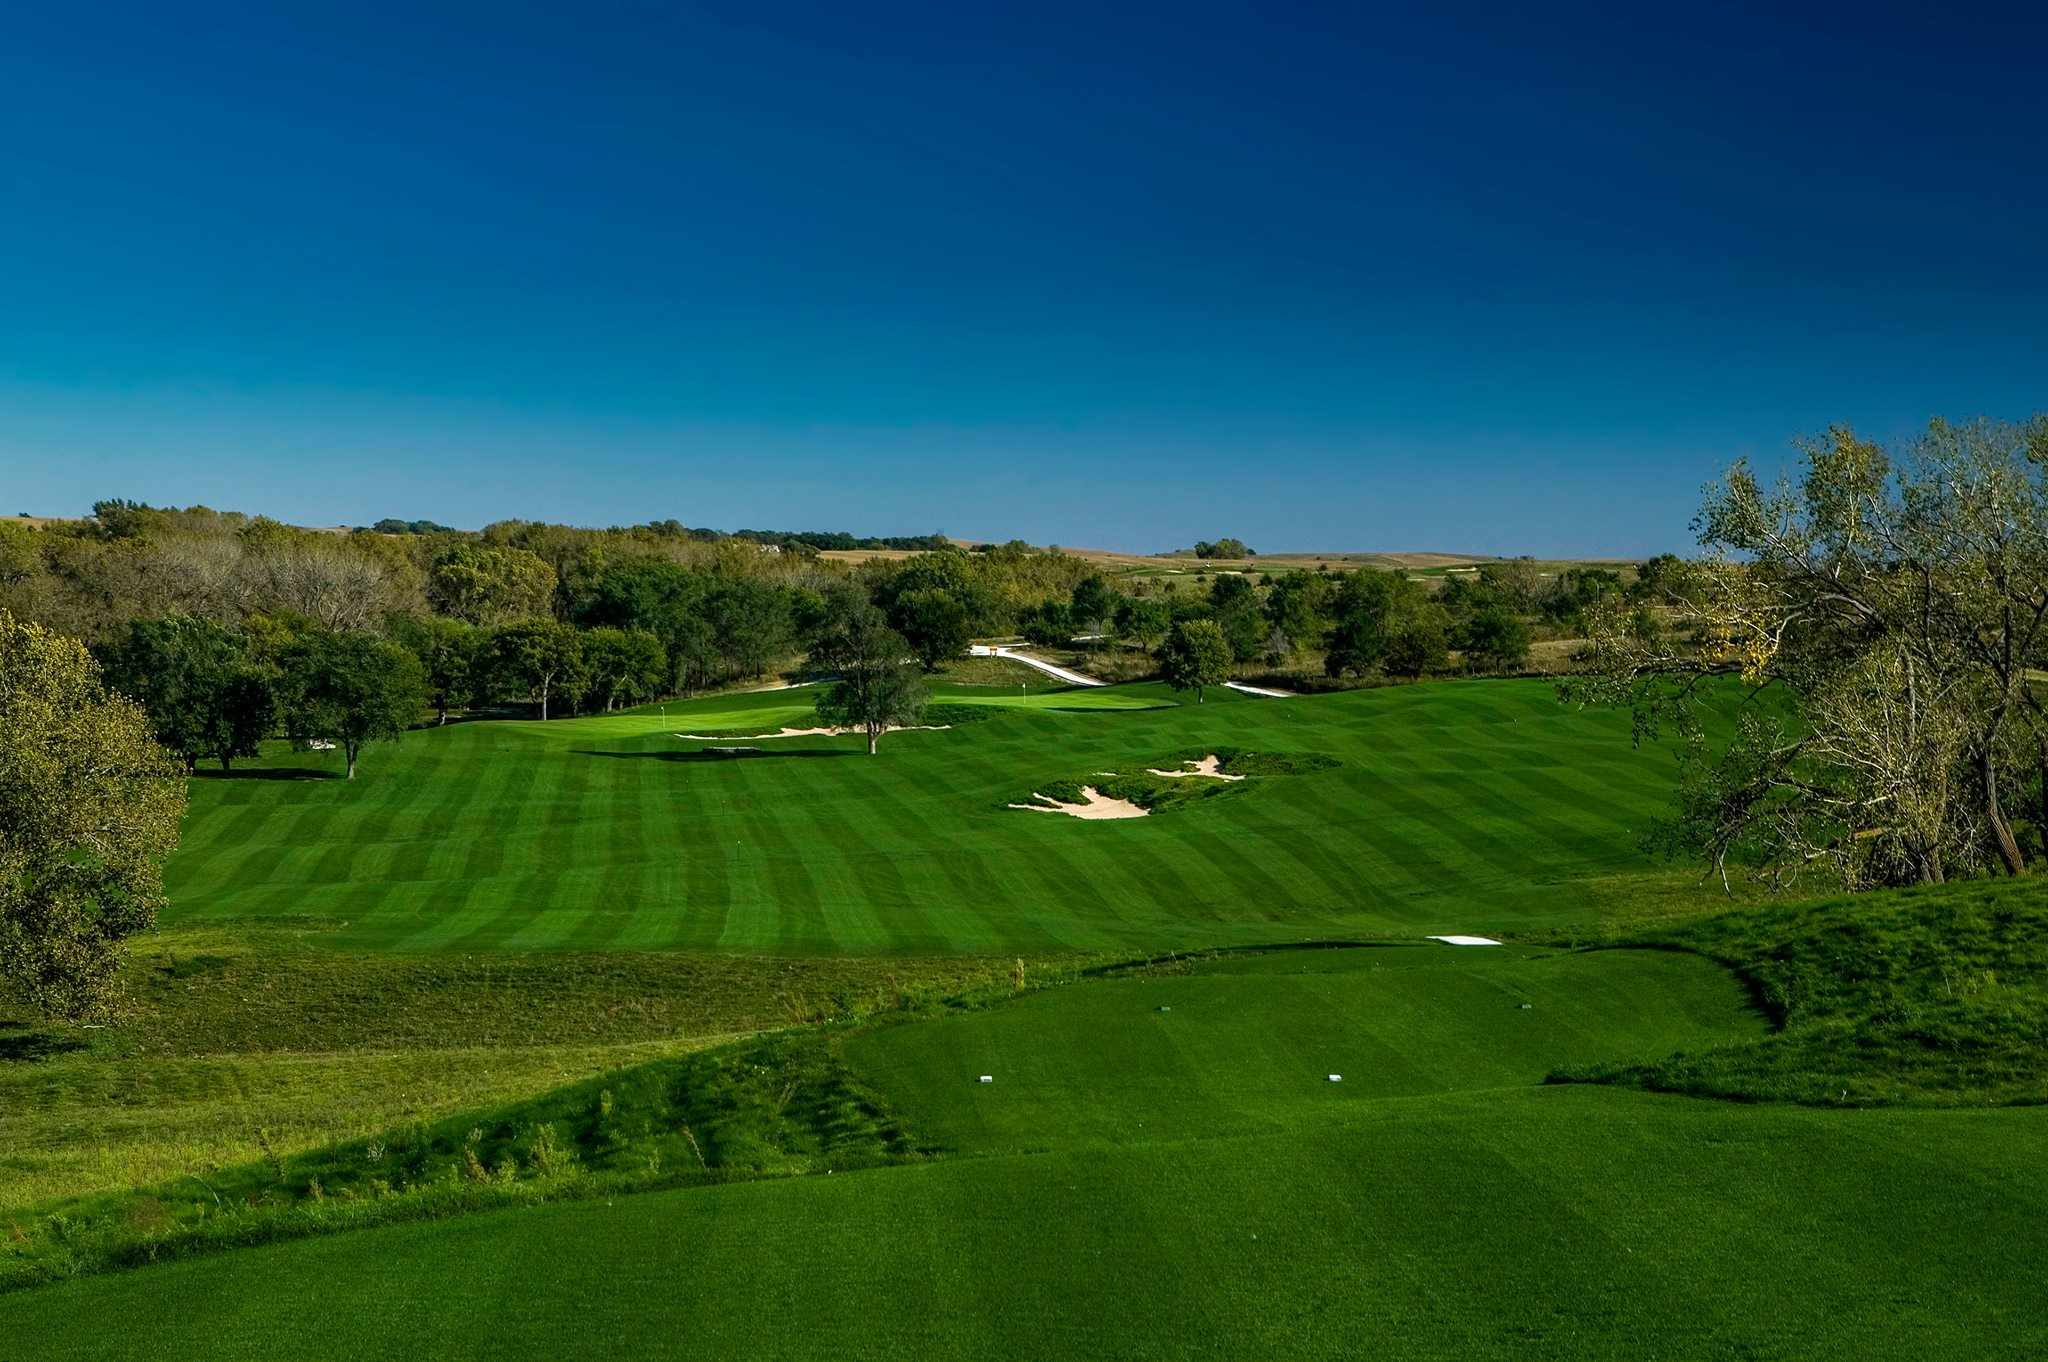 Santee Sioux Tribe hosts grand opening for golf course at casino